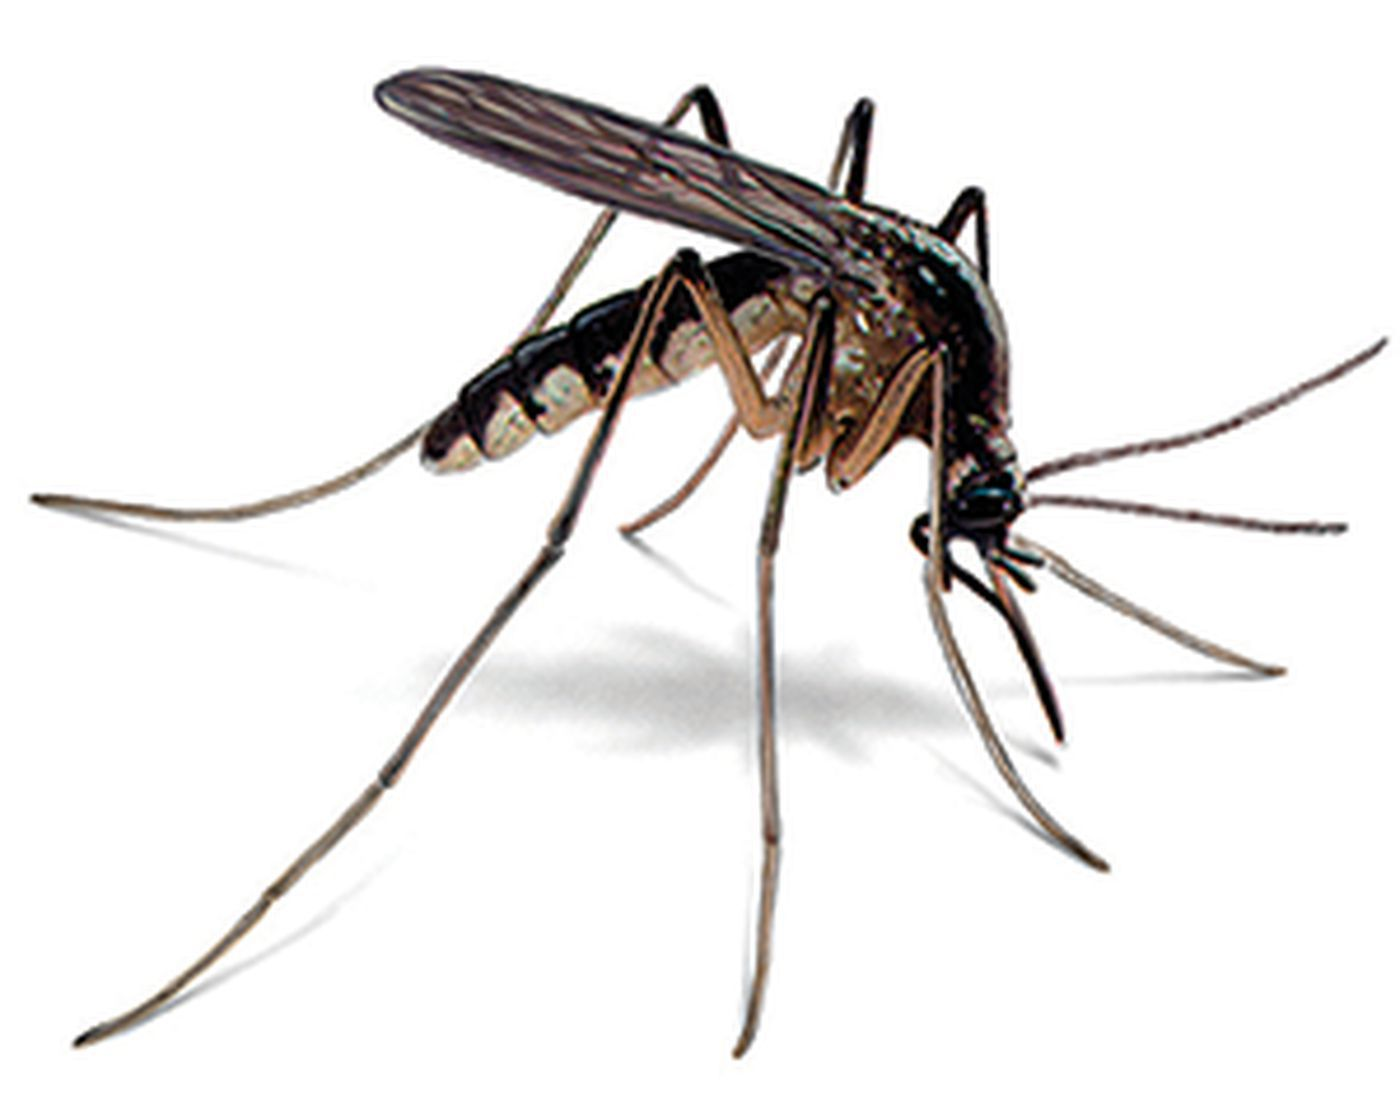 West Nile Virus-carrying mosquitoes still a concern